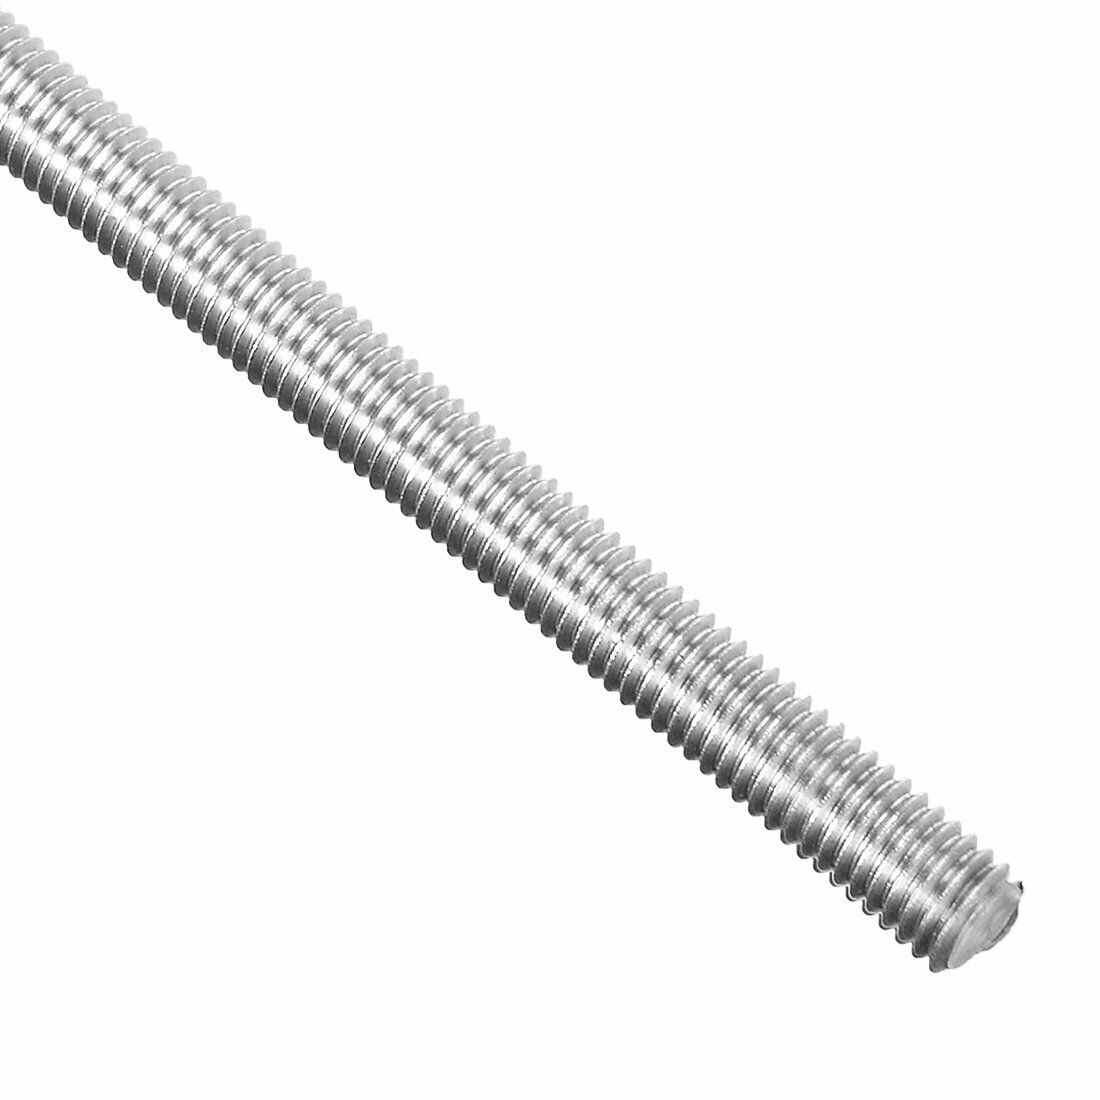 500mm Fully Threaded Stainless Steel Rod Right Hand Threads M4 M5 M6 M8 M10 M16 Business & Industrial